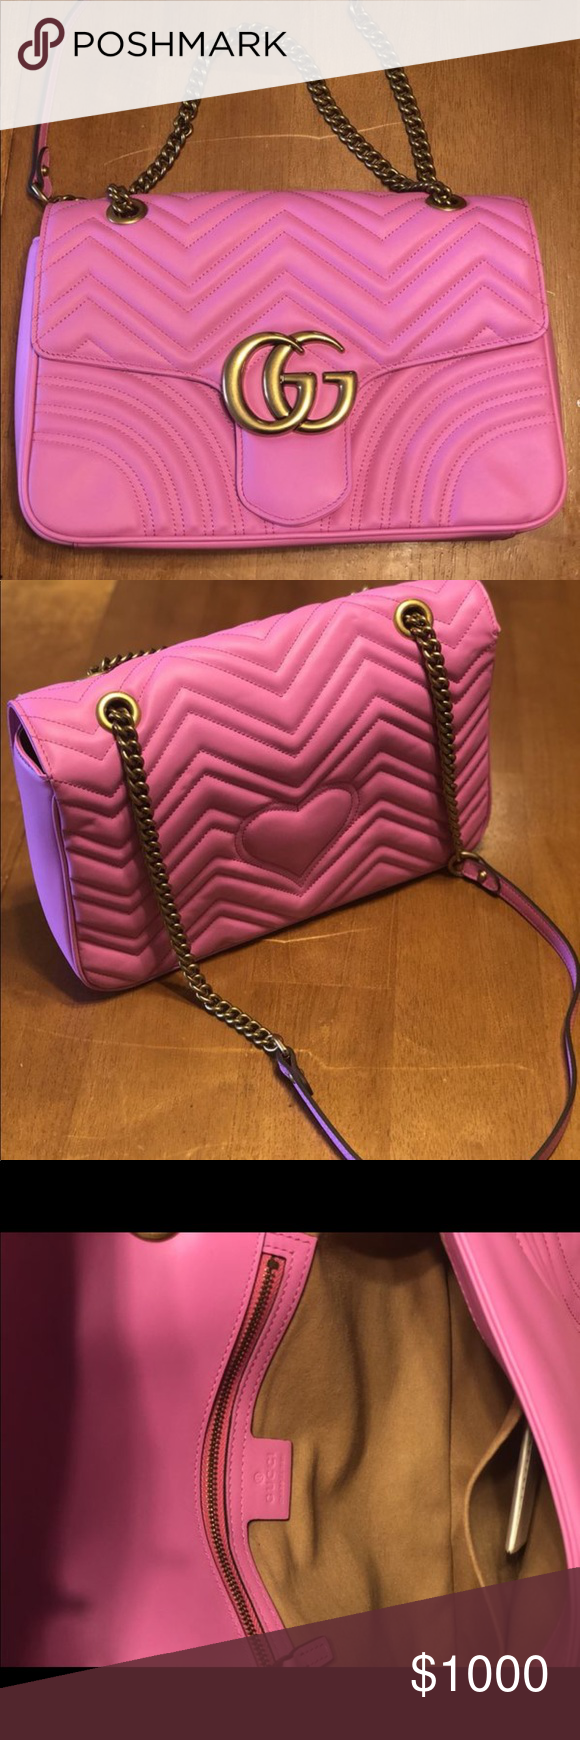 e80952e0b757 Pink Gucci Marmont Purse Gucci Calfskin Matelasse Medium GG Marmont  Shoulder Bag Candy Pink💕 - Great Condition! - Used a limited amount of  times Length: ...